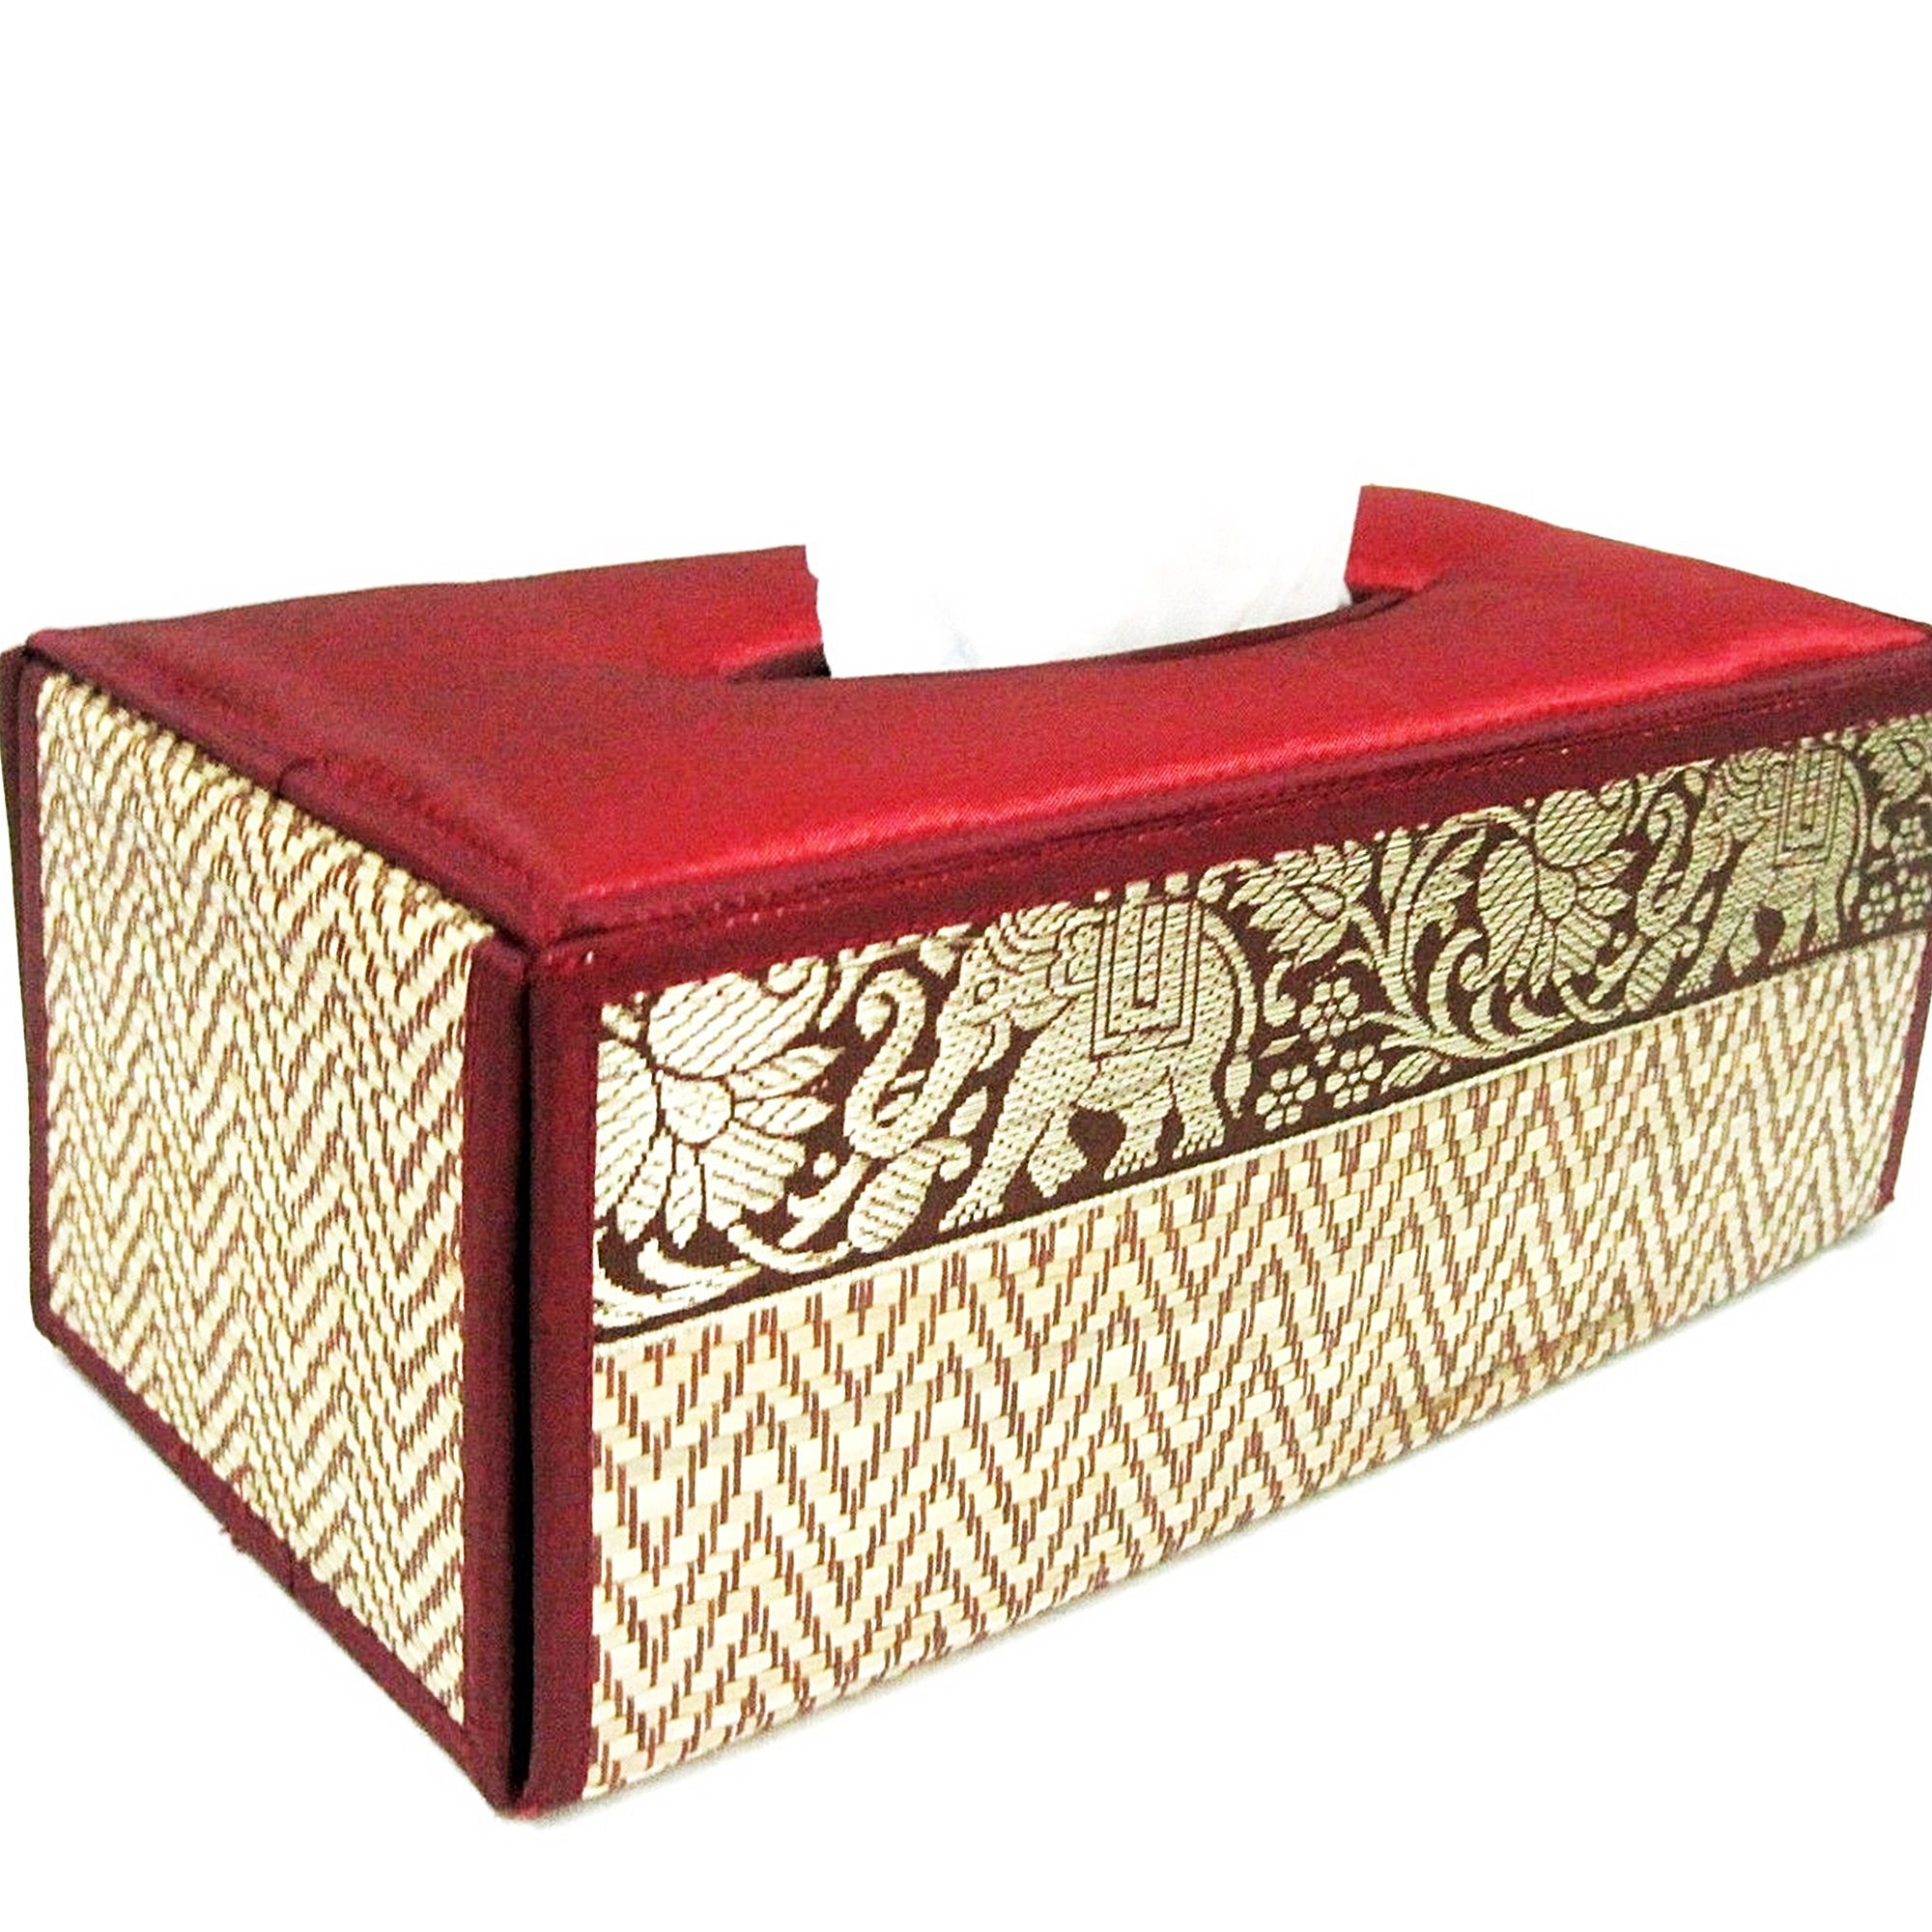 chantubtimplaza Tissue Box Cover Thai Handicraft Elephant Silk Reed Red Color Handmade Home Decor by chantubtimplaza